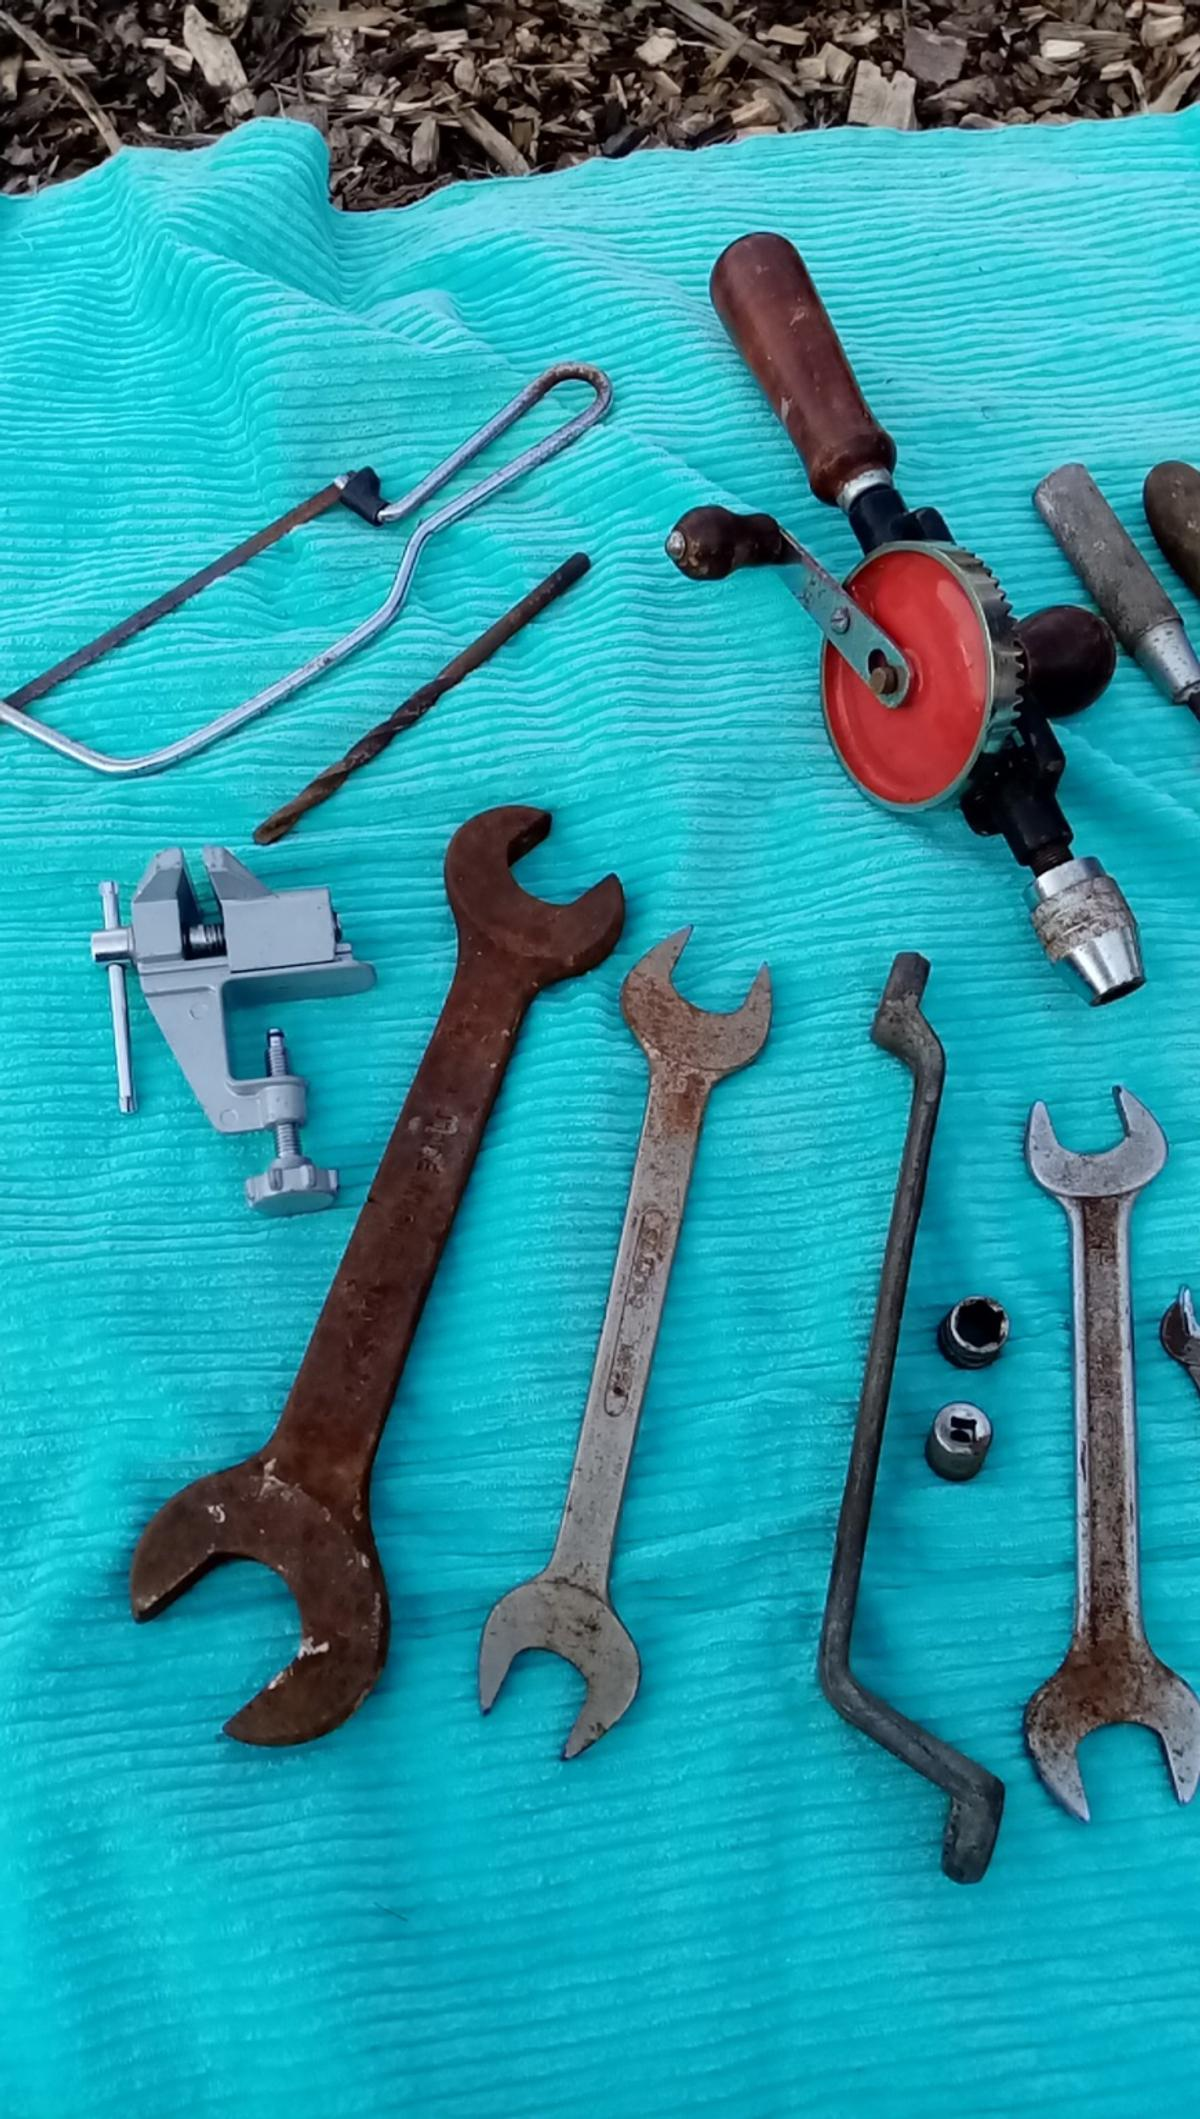 Spanners, screw drivers, clamp, saws in used condition from smoke free and pet free home bargain £5 must be collected within 3 days of purchasing the item